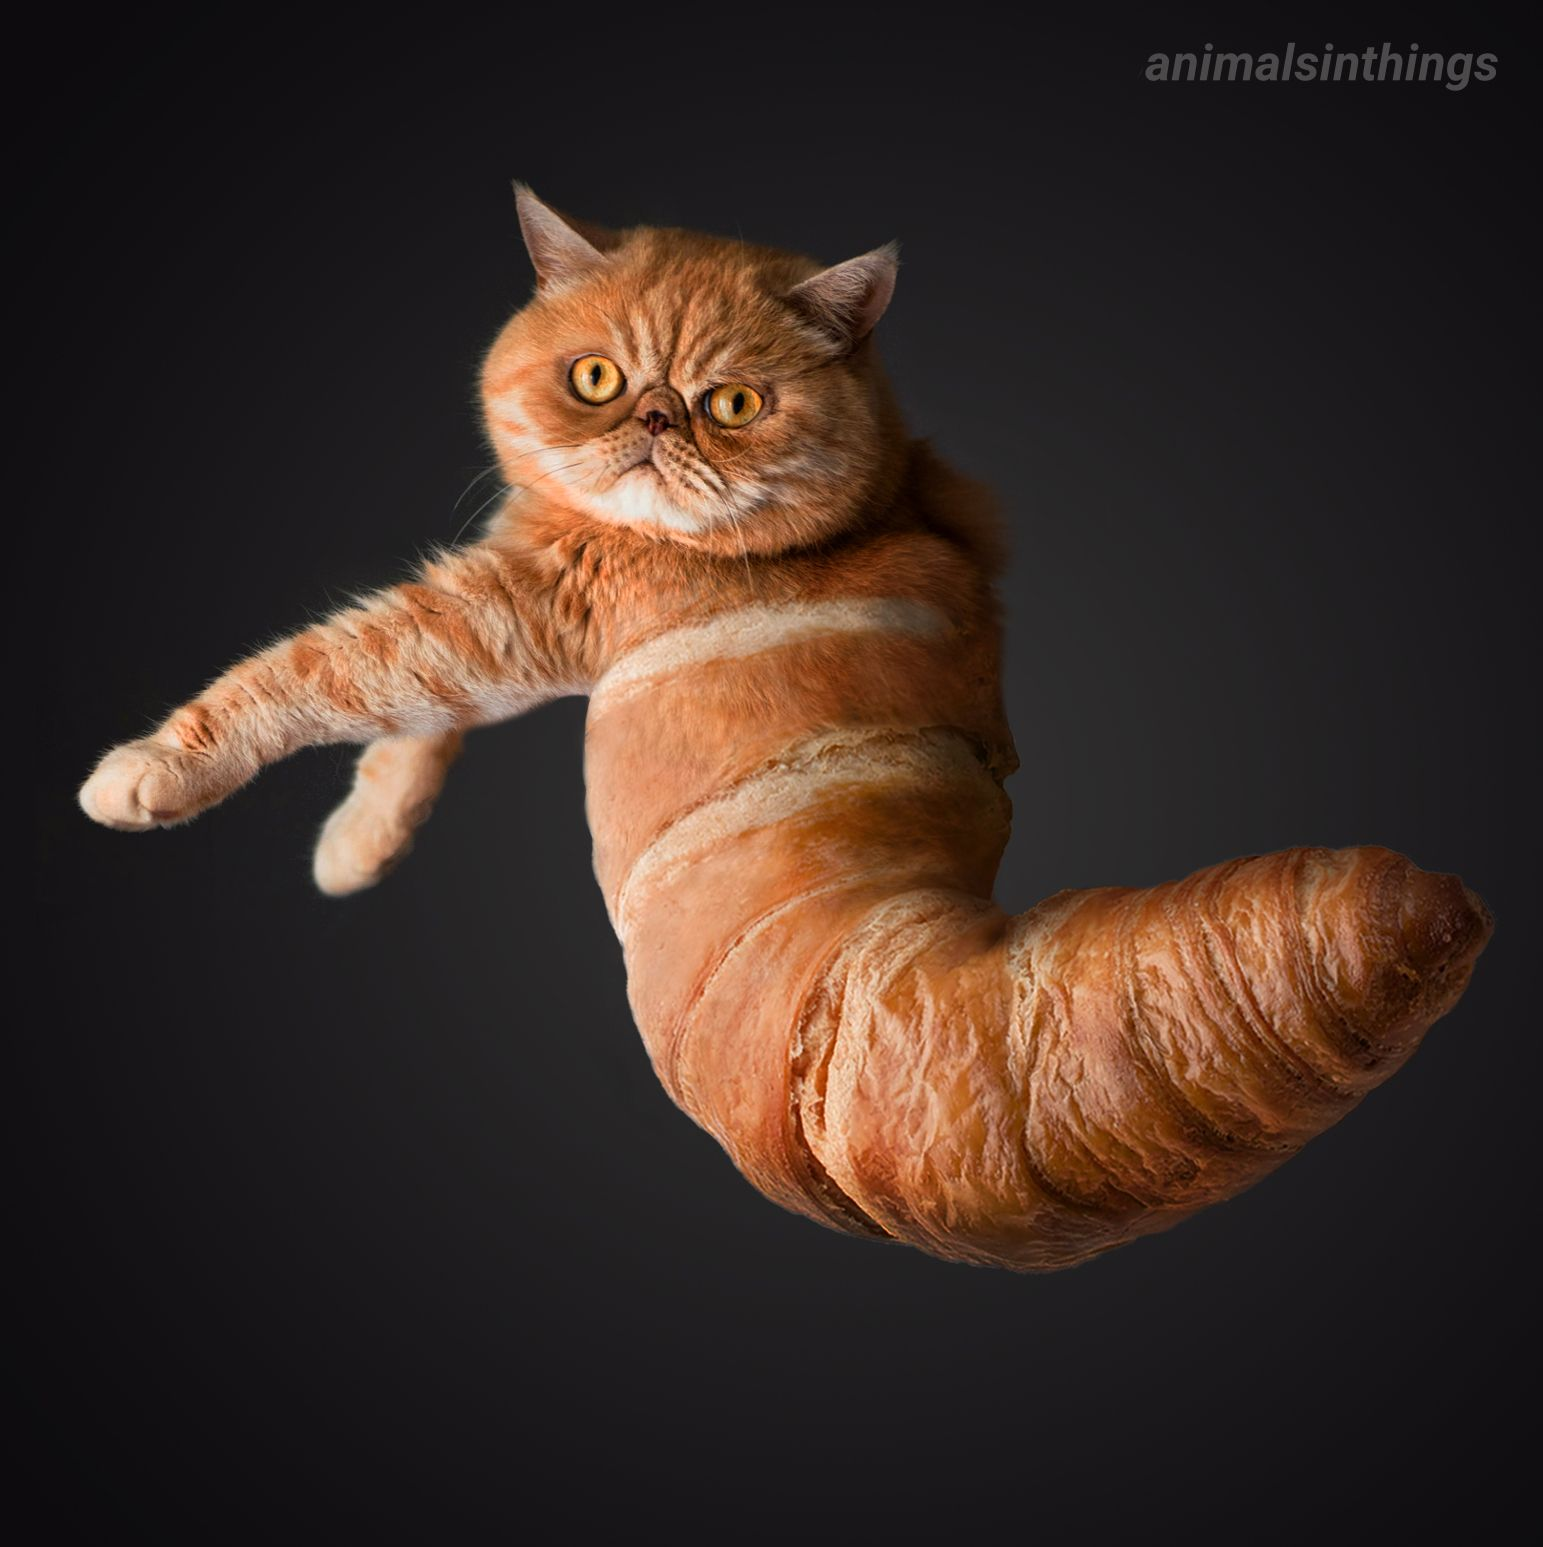 I photoshopped a cat into a croissant for you.